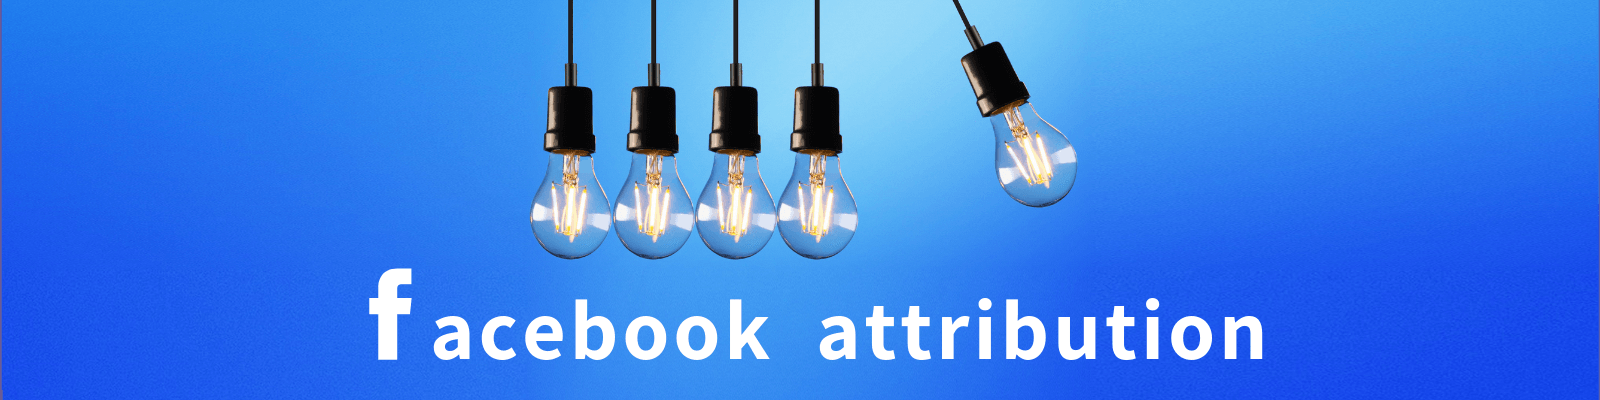 Facebook Attribution como funciona